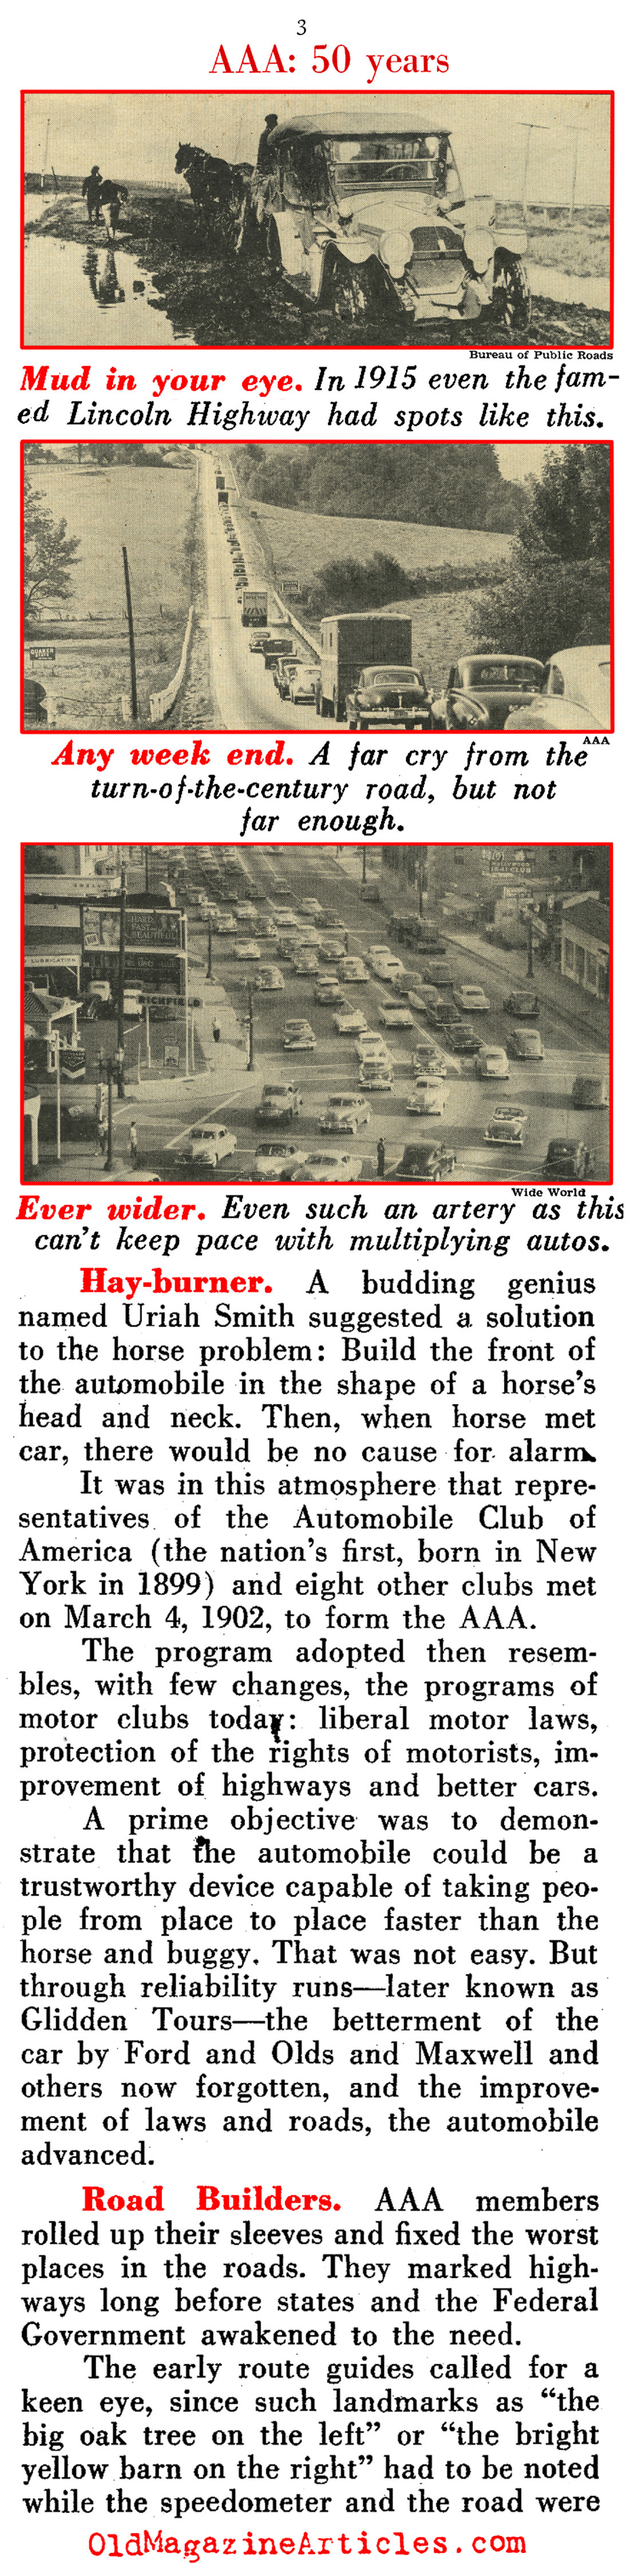 The First Fifty-Years Behind the Wheel (Pathfinder Magazine, 1952)